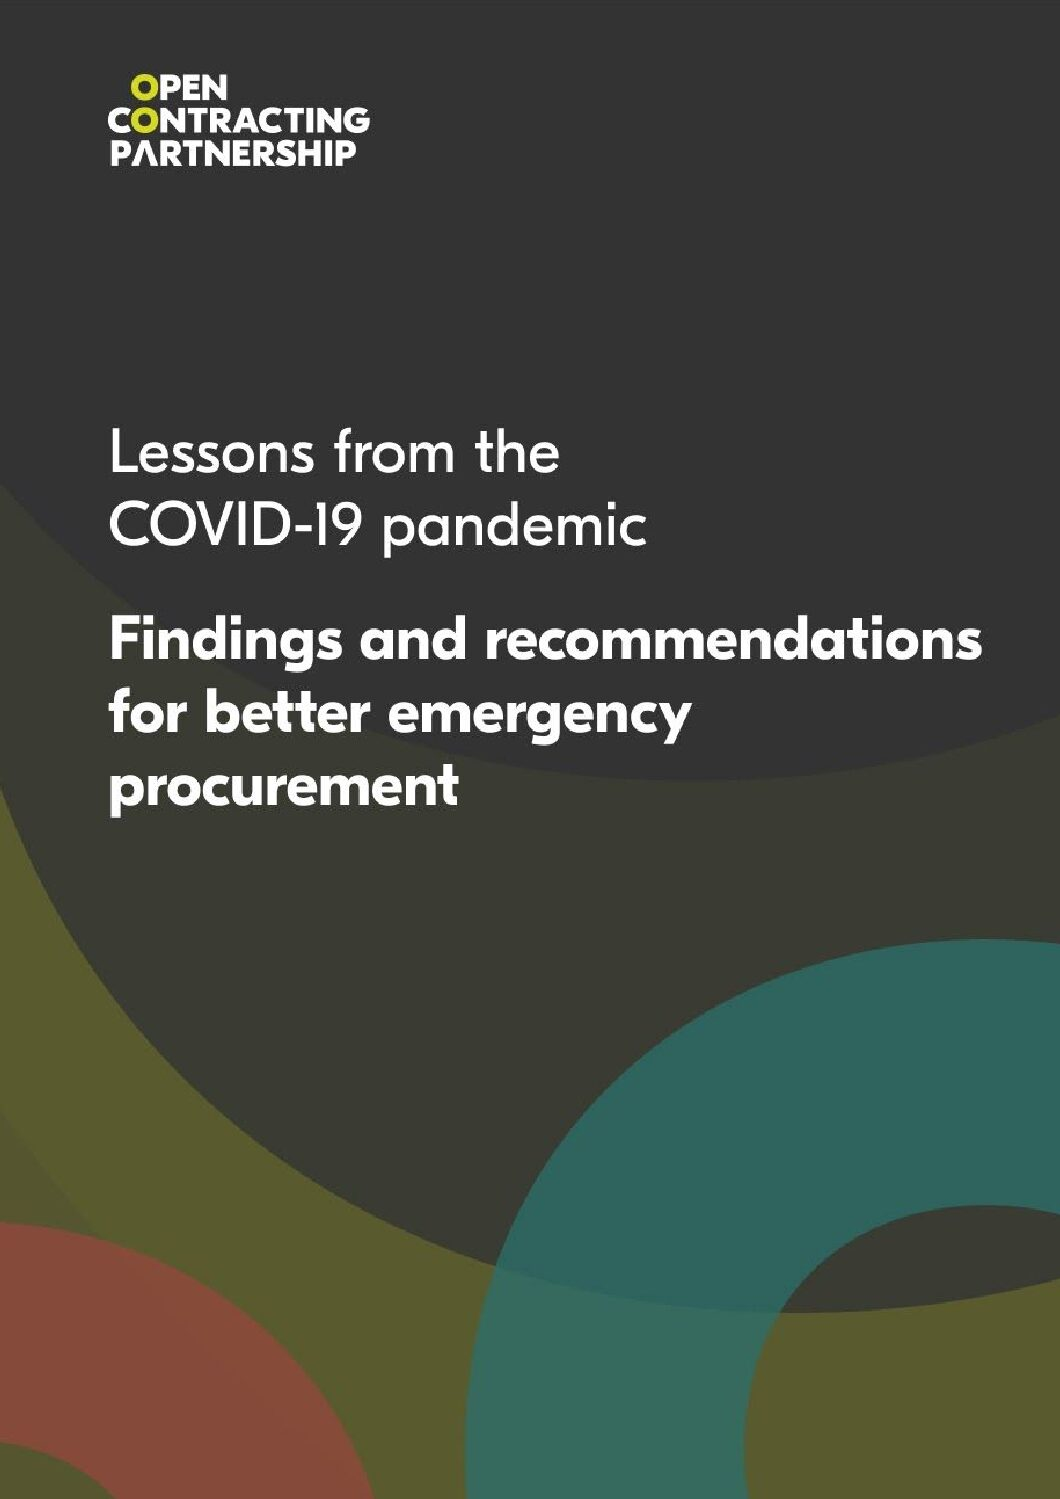 Lessons from the COVID 19 pandemic: Findings and recommendations for better emergency procurement from 12 countries